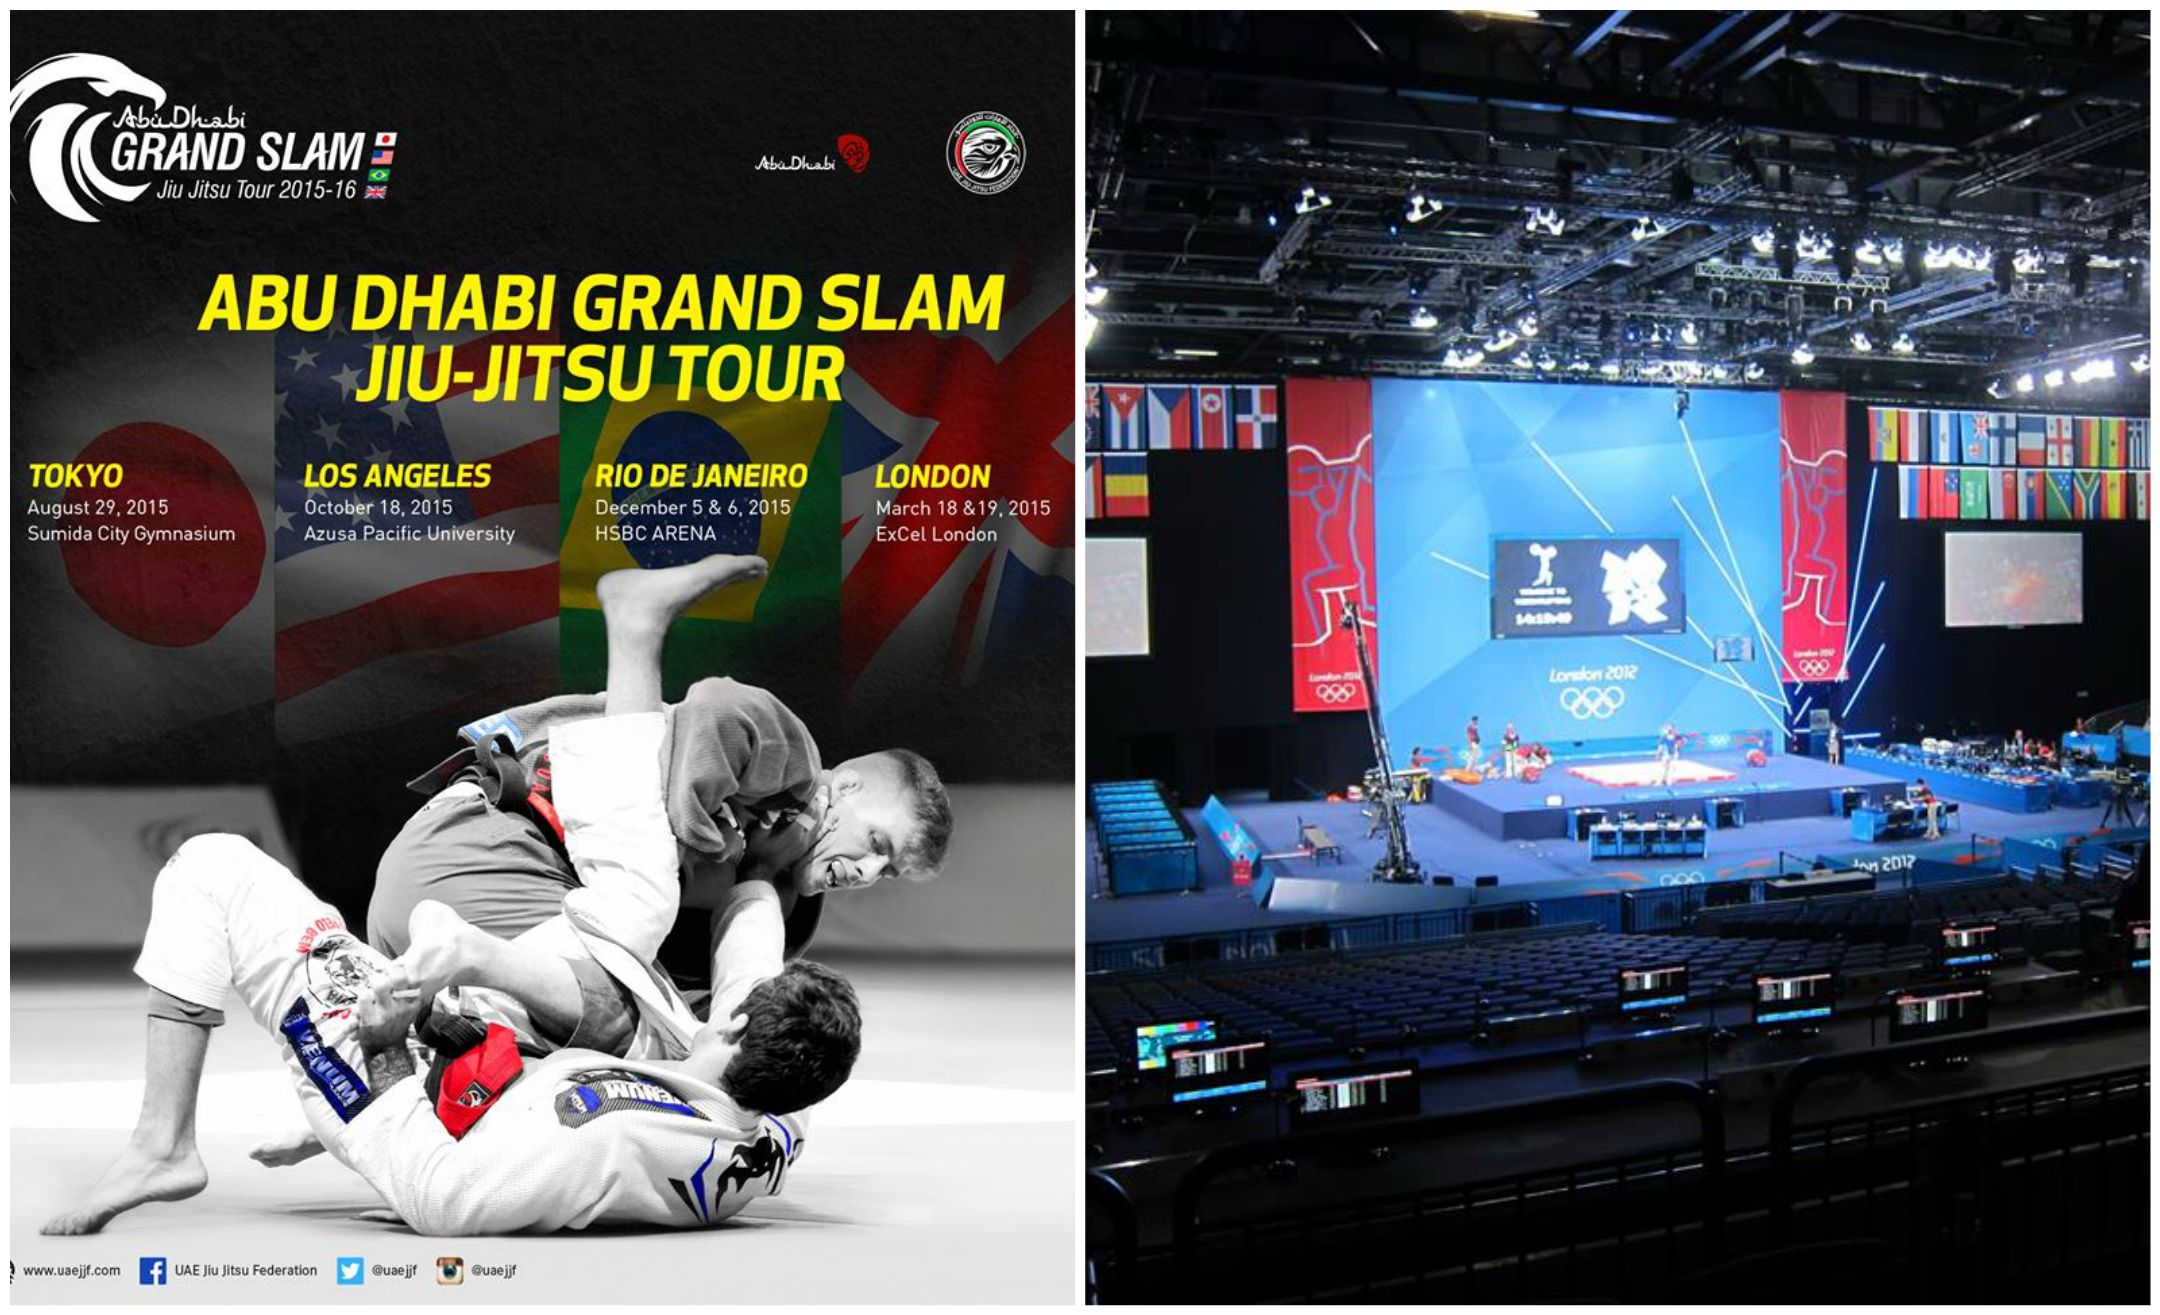 Abu Dhabi Grand Slam Tour: London Event Set for 19/20th March 2016; Big Cash Prizes